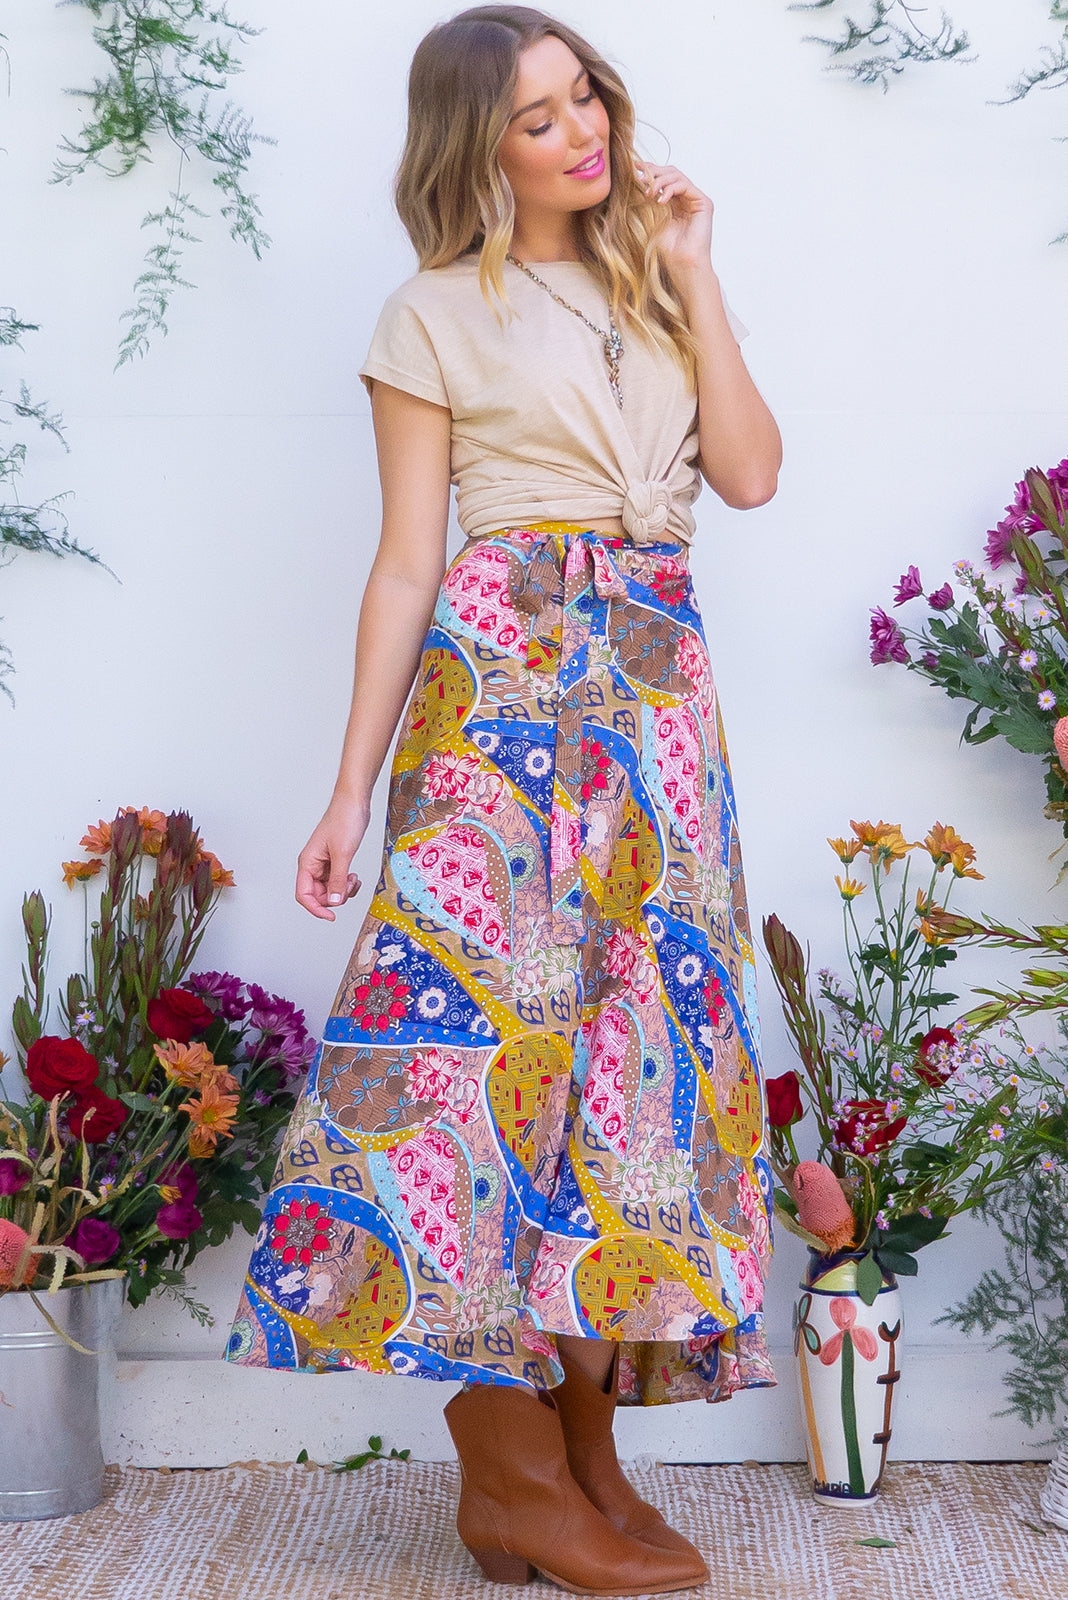 Penny Lane Boho Patches Maxi Wrap Skirt with an adjustable wraparound waist and waterfall hemline in a soft woven rayon with a bright bohemian  patchwork print